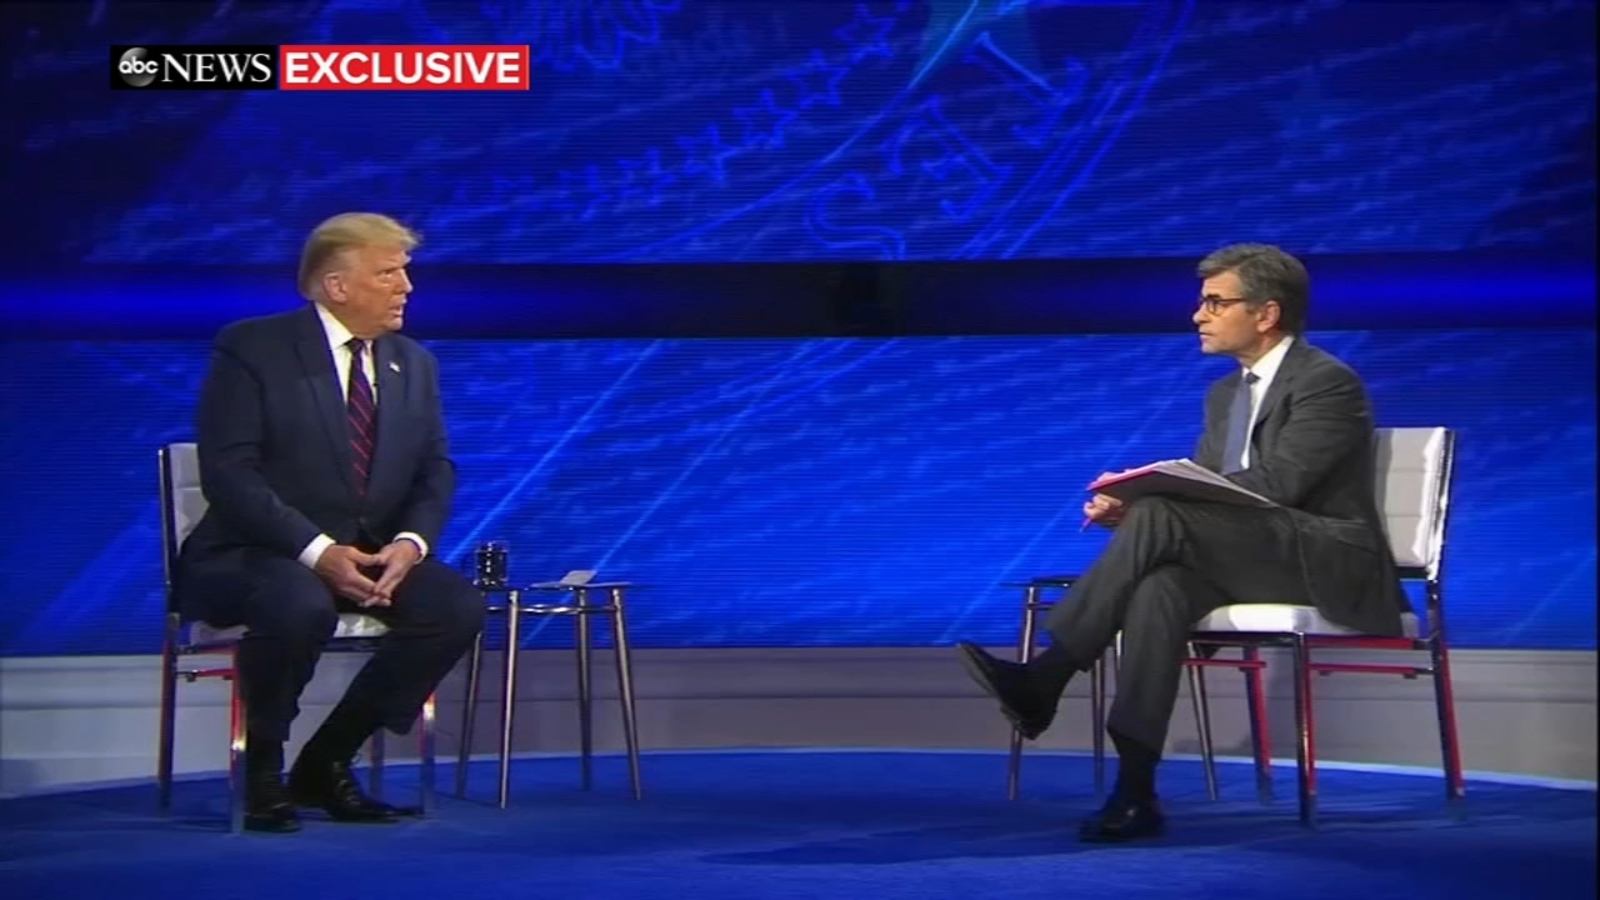 Trump In Philadelphia President Faces Uncommitted Voters During Abc News Town Hall At National Constitution Center 6abc Philadelphia